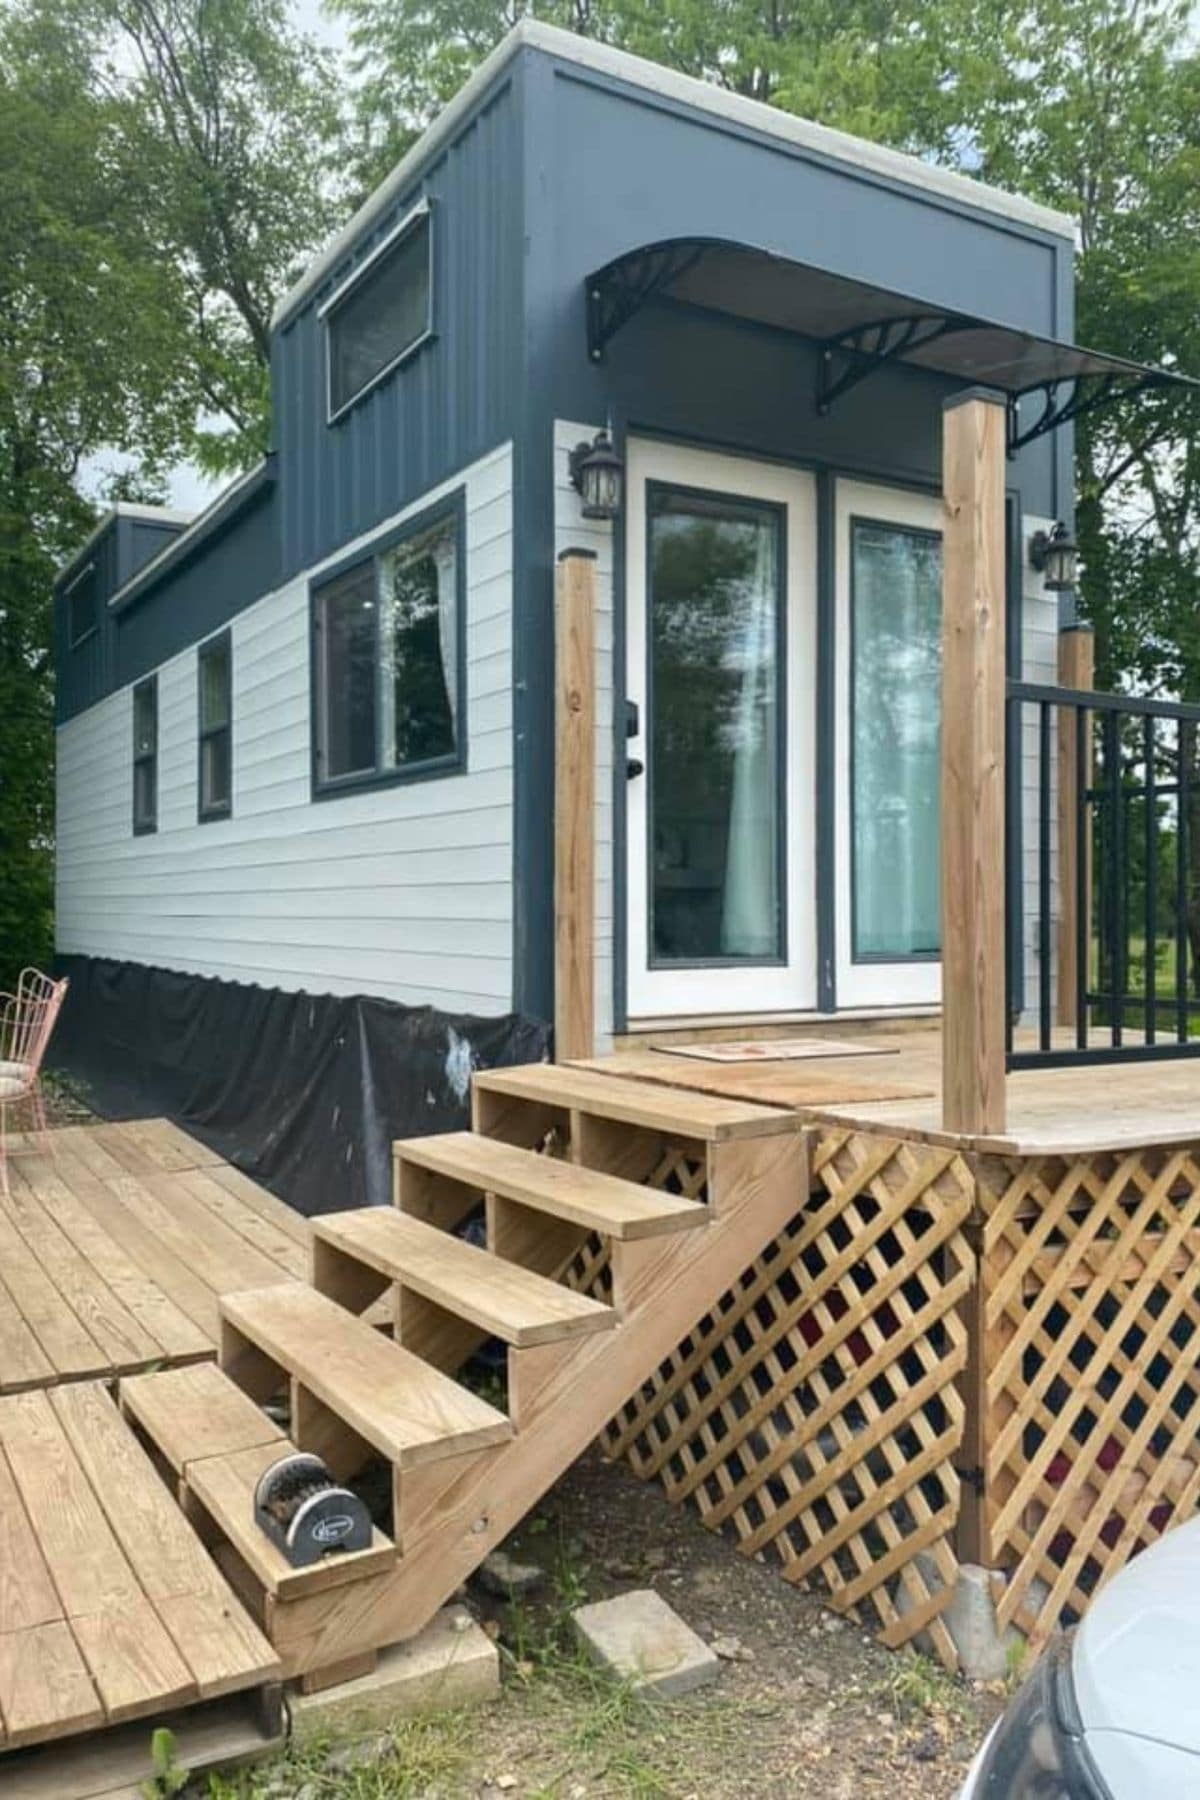 Gray and white tiny home with glass doors on end and wood front porch